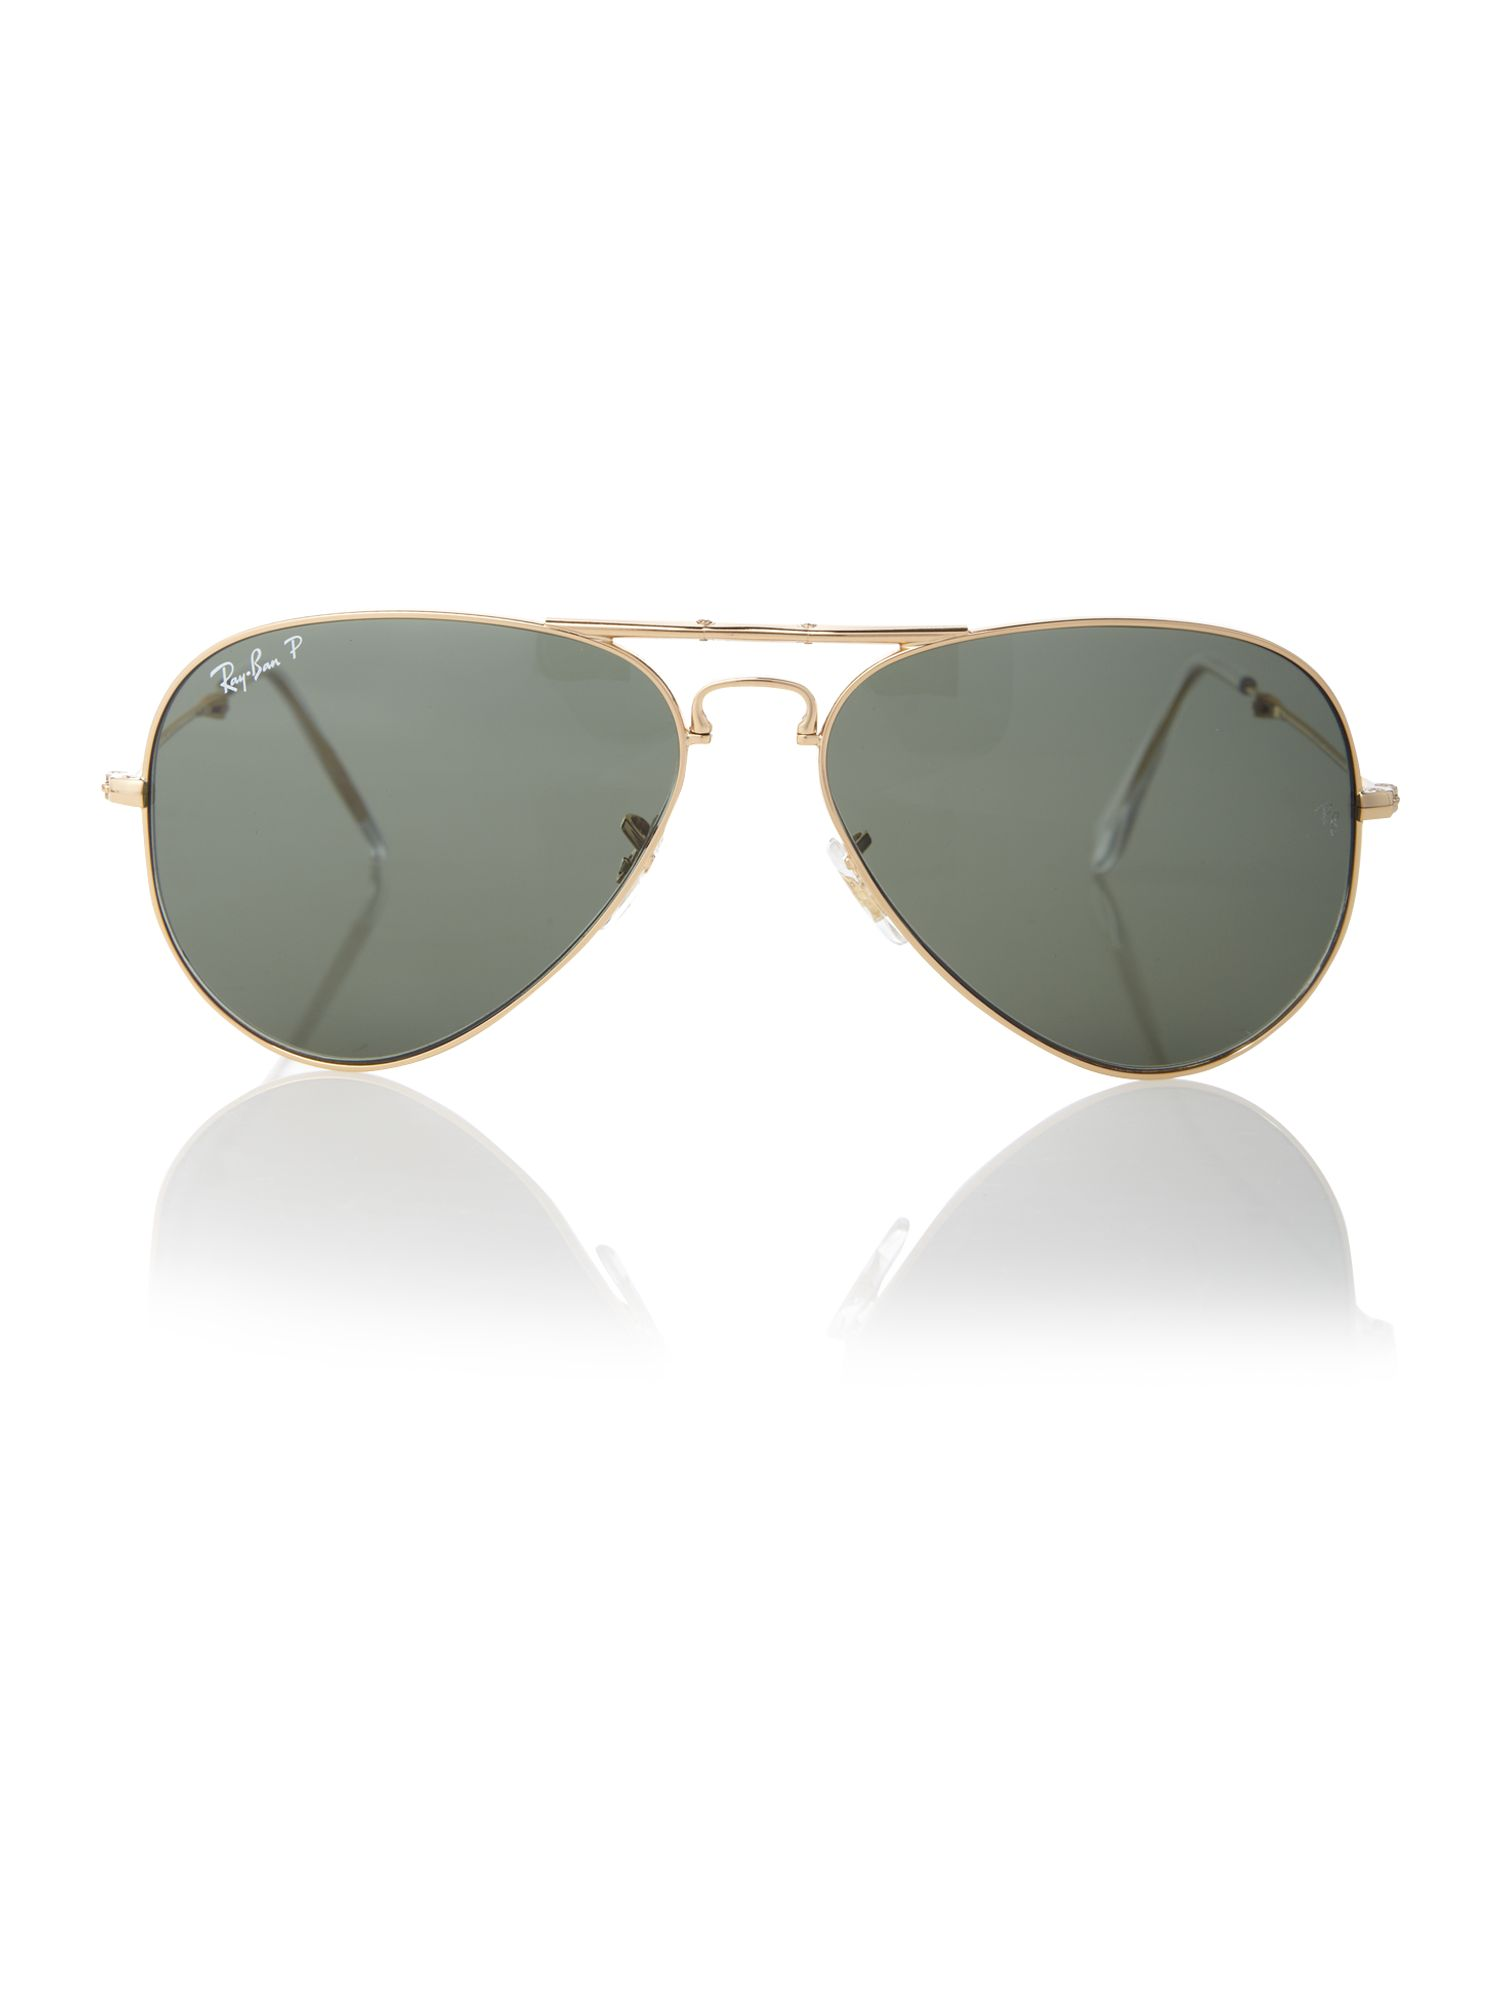 Unisex RB3479 001/58 Folding Aviator Sunglasses